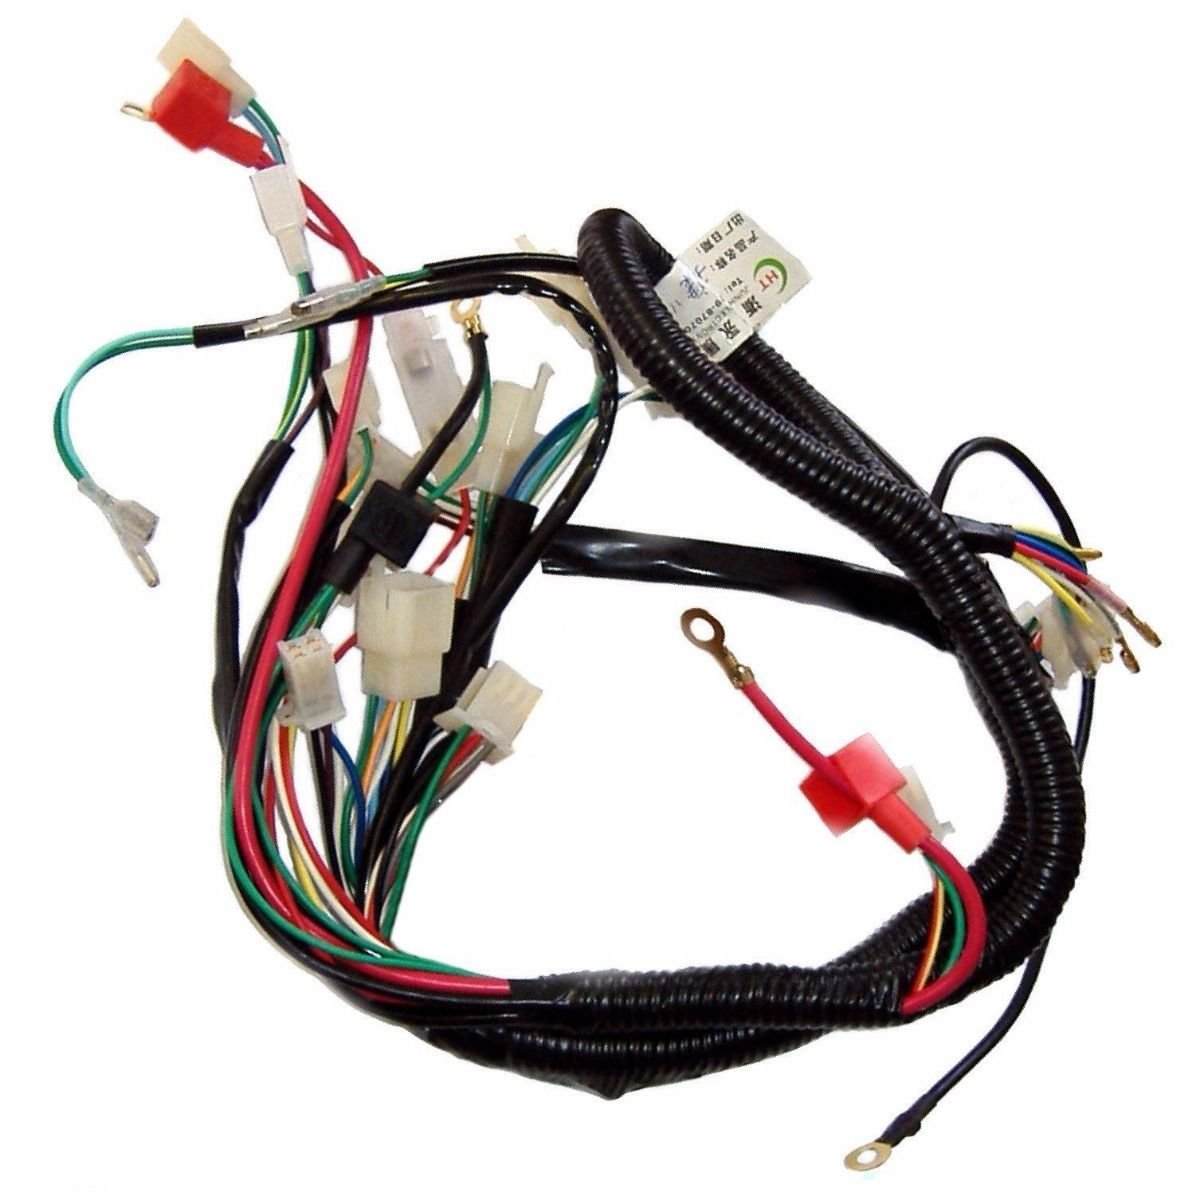 Full Electrics Wiring Harness Cdi Coil 110cc 125cc Atv Quad Bike Chinese Pocket Rocket Diagram Buggy Gokart Taotao Jetmoto Roketa Electrical Amazon Canada